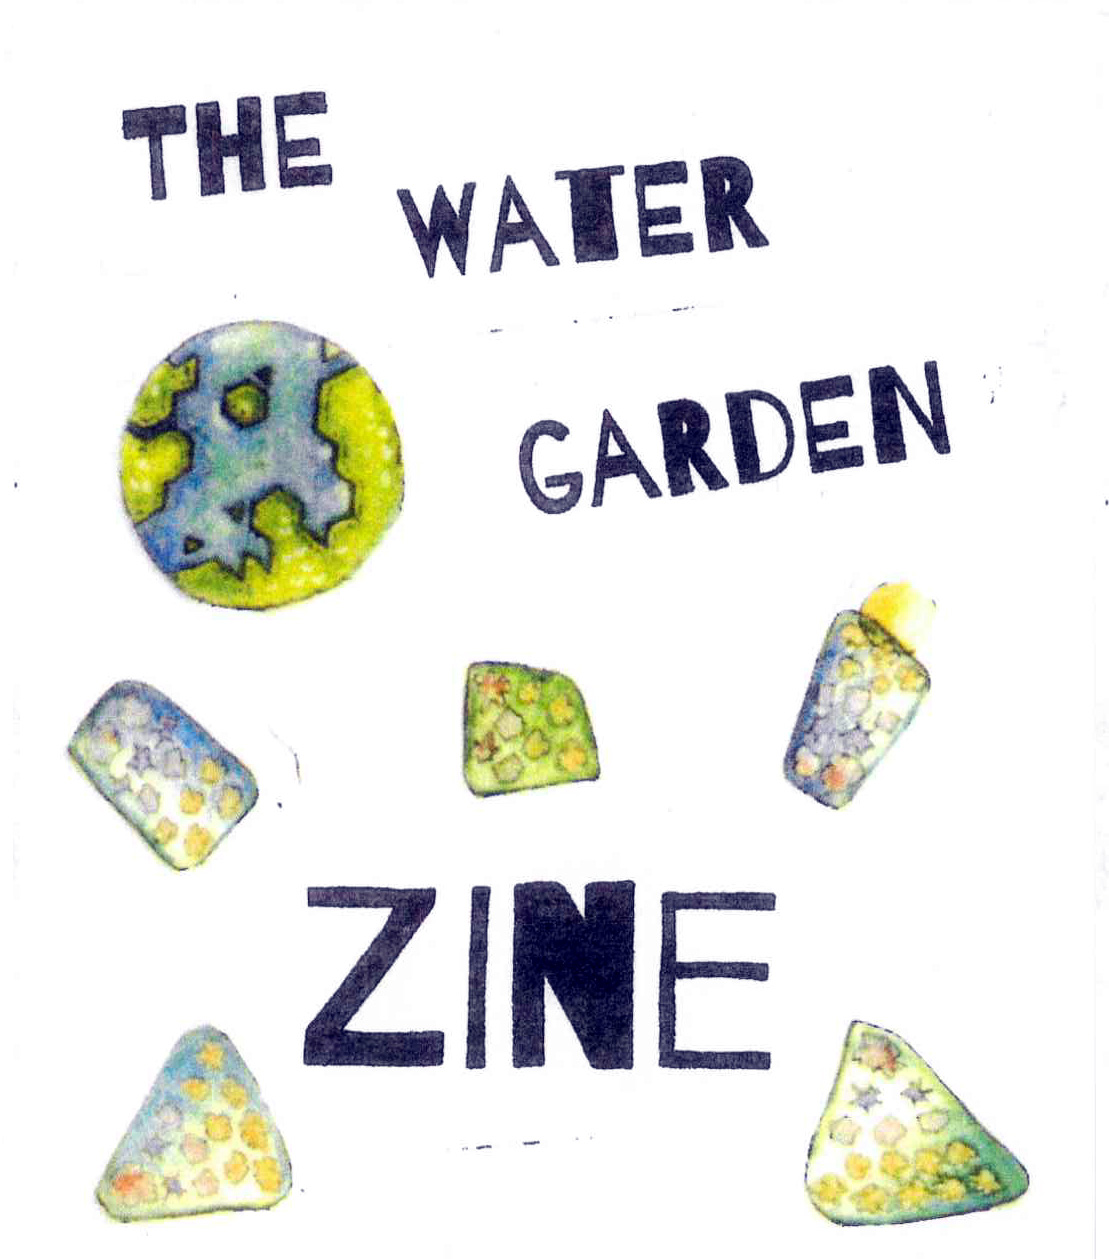 The Water Garden Zine